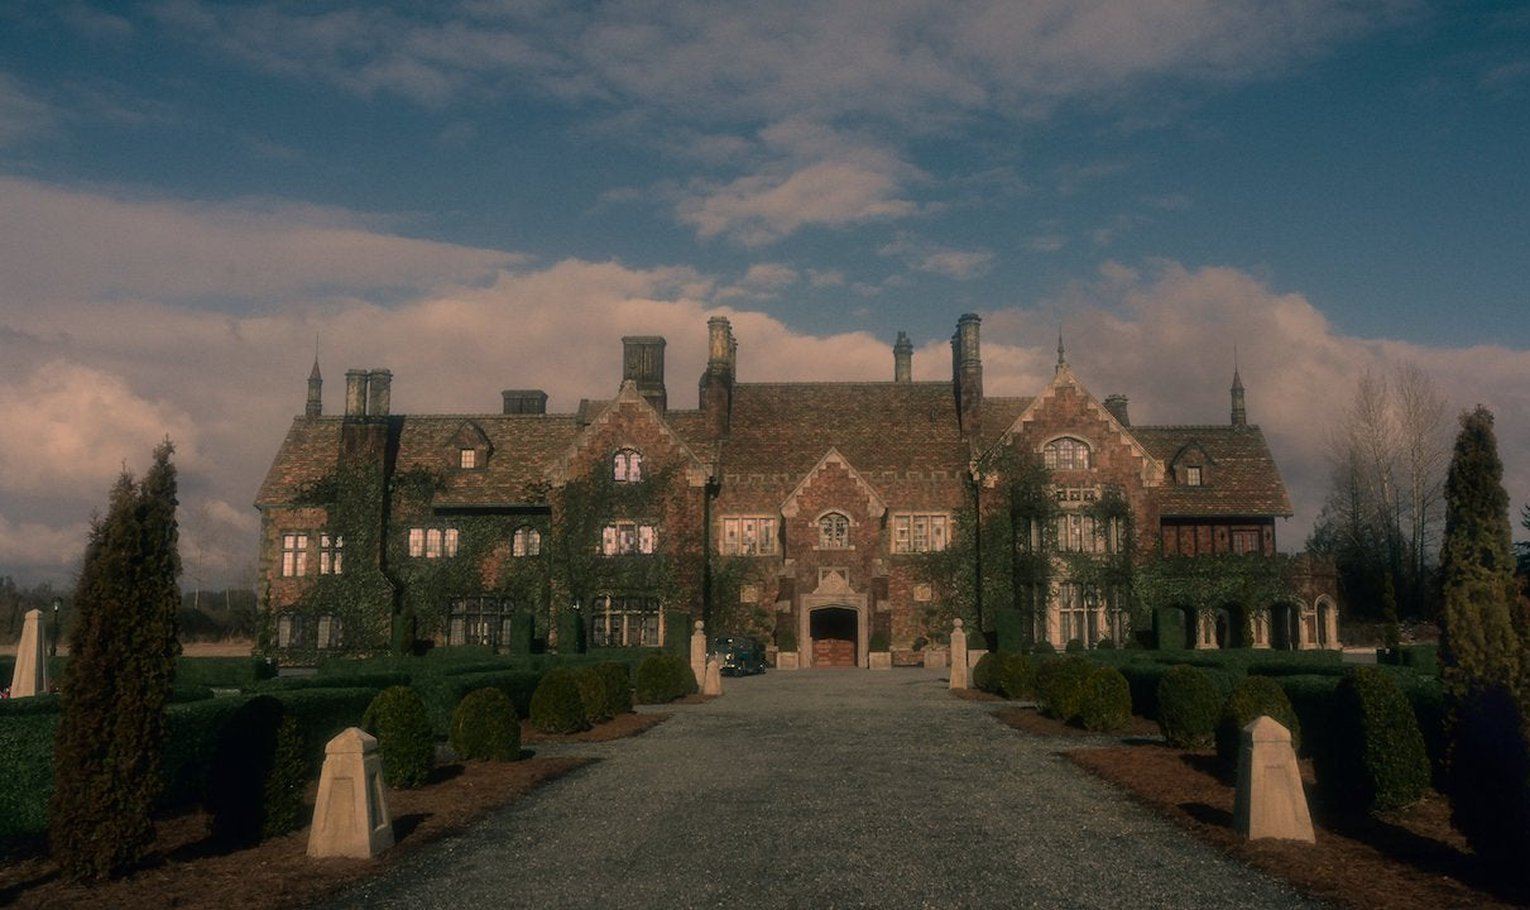 The Haunting Of Hill House Season 2 Fans Invited To Call Bly Manor